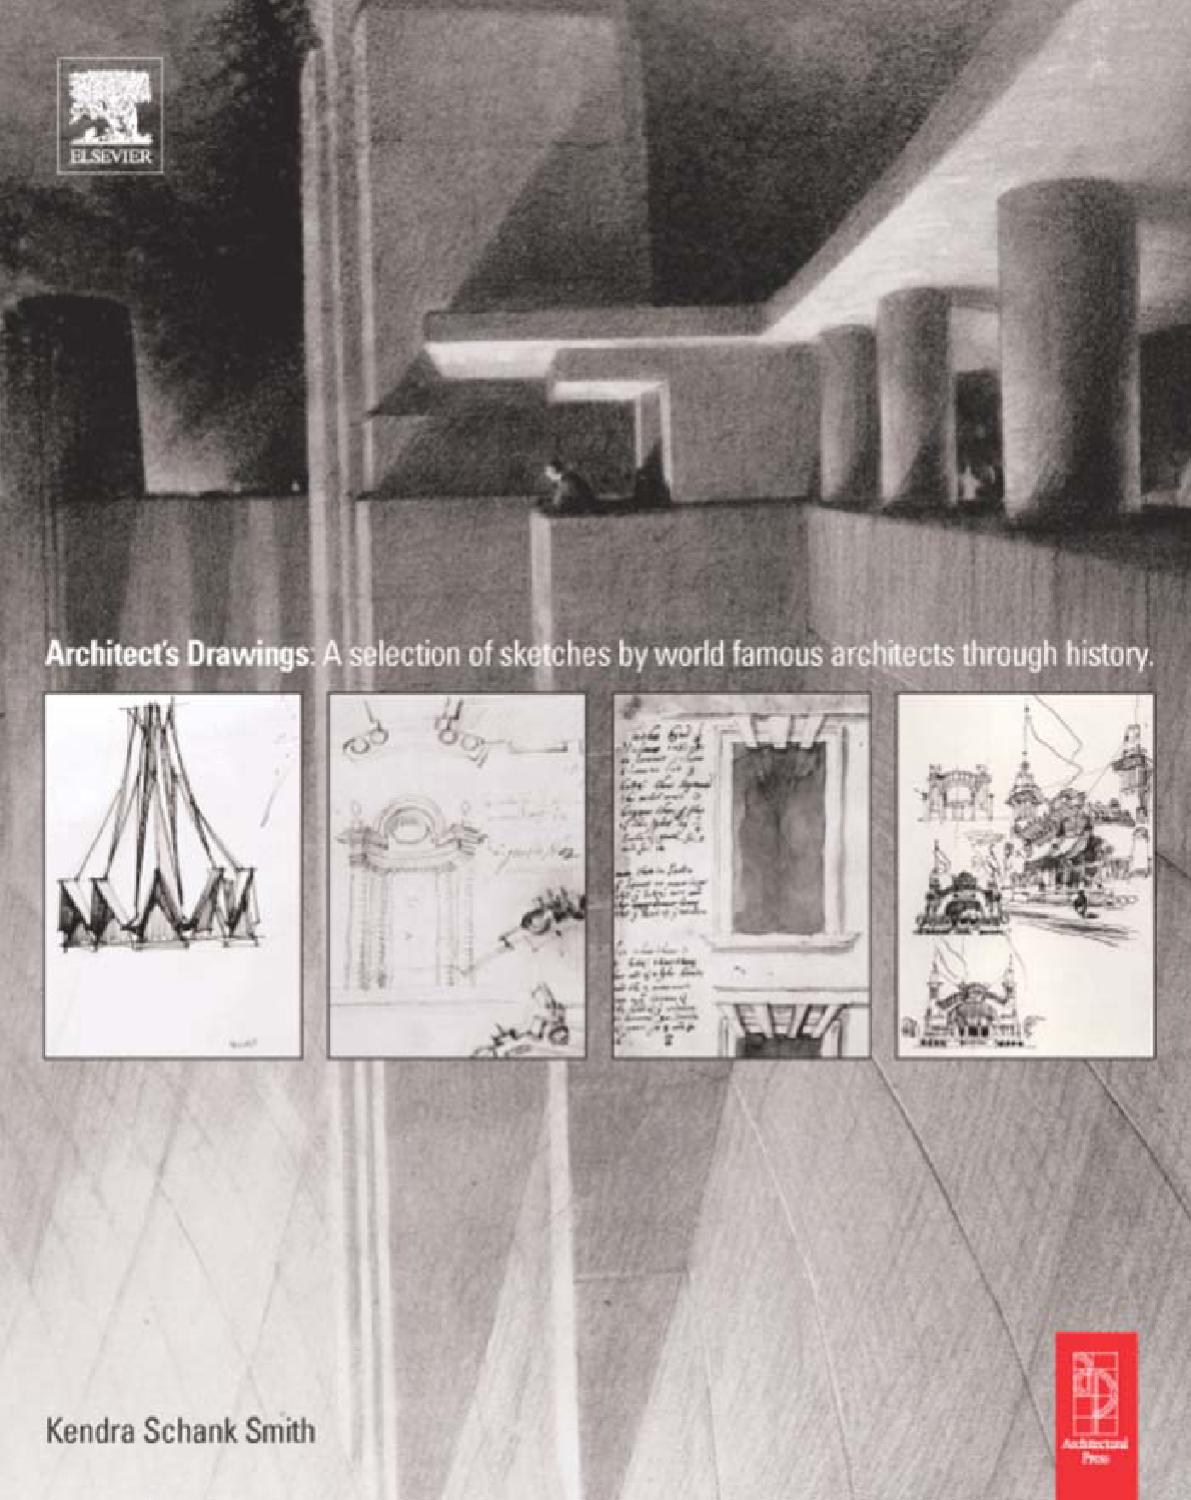 Liceo Artistico Michelangelo Como architects-d_rawings-w_orld-famous2-architects.pdf by boris